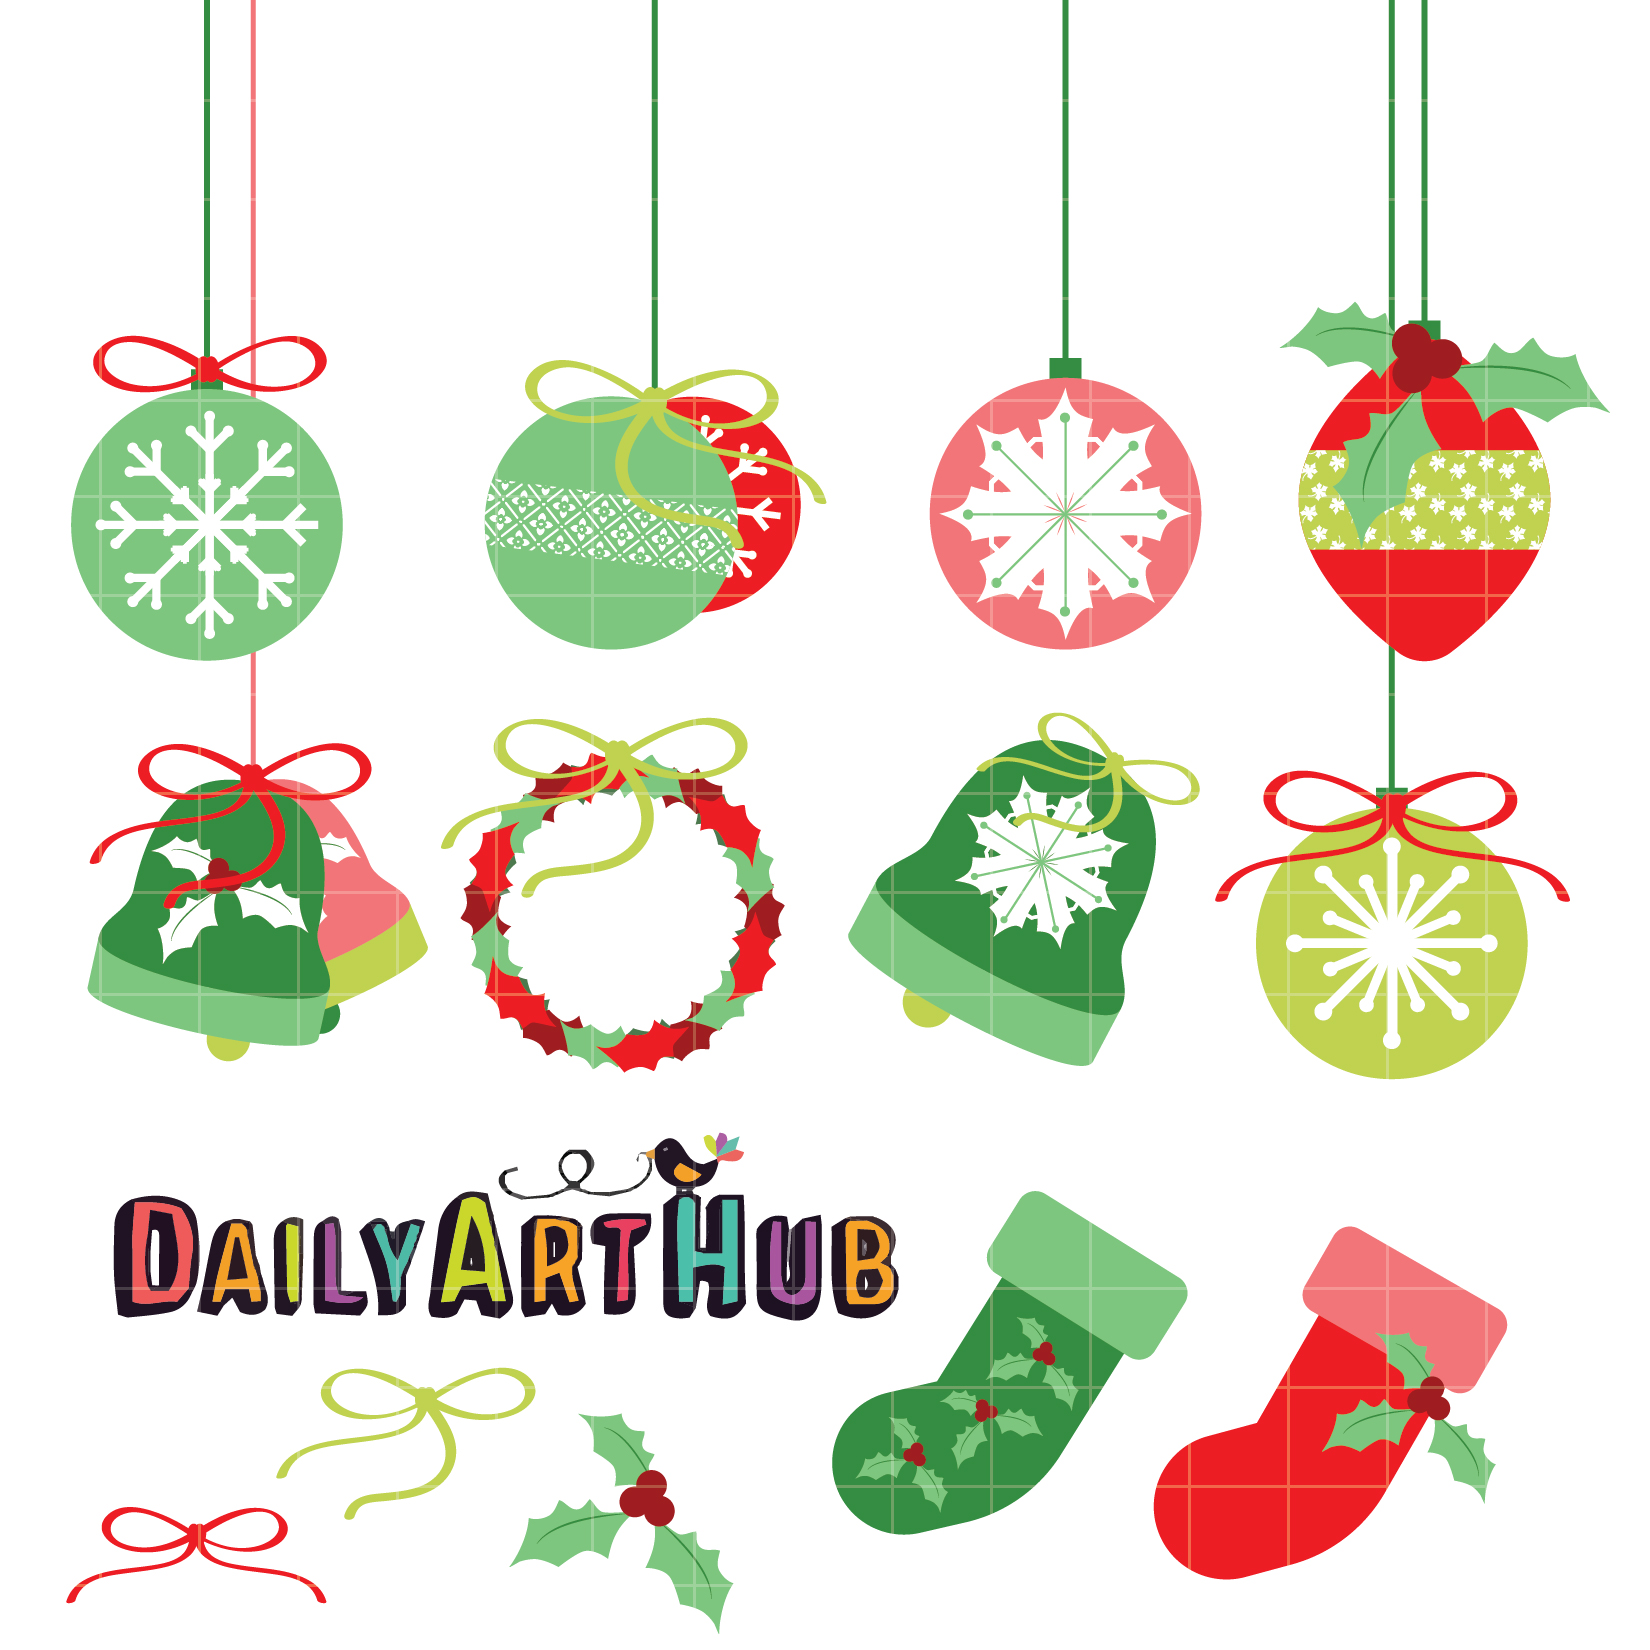 Christmas decorations clip art set daily art hub for Decoration clips